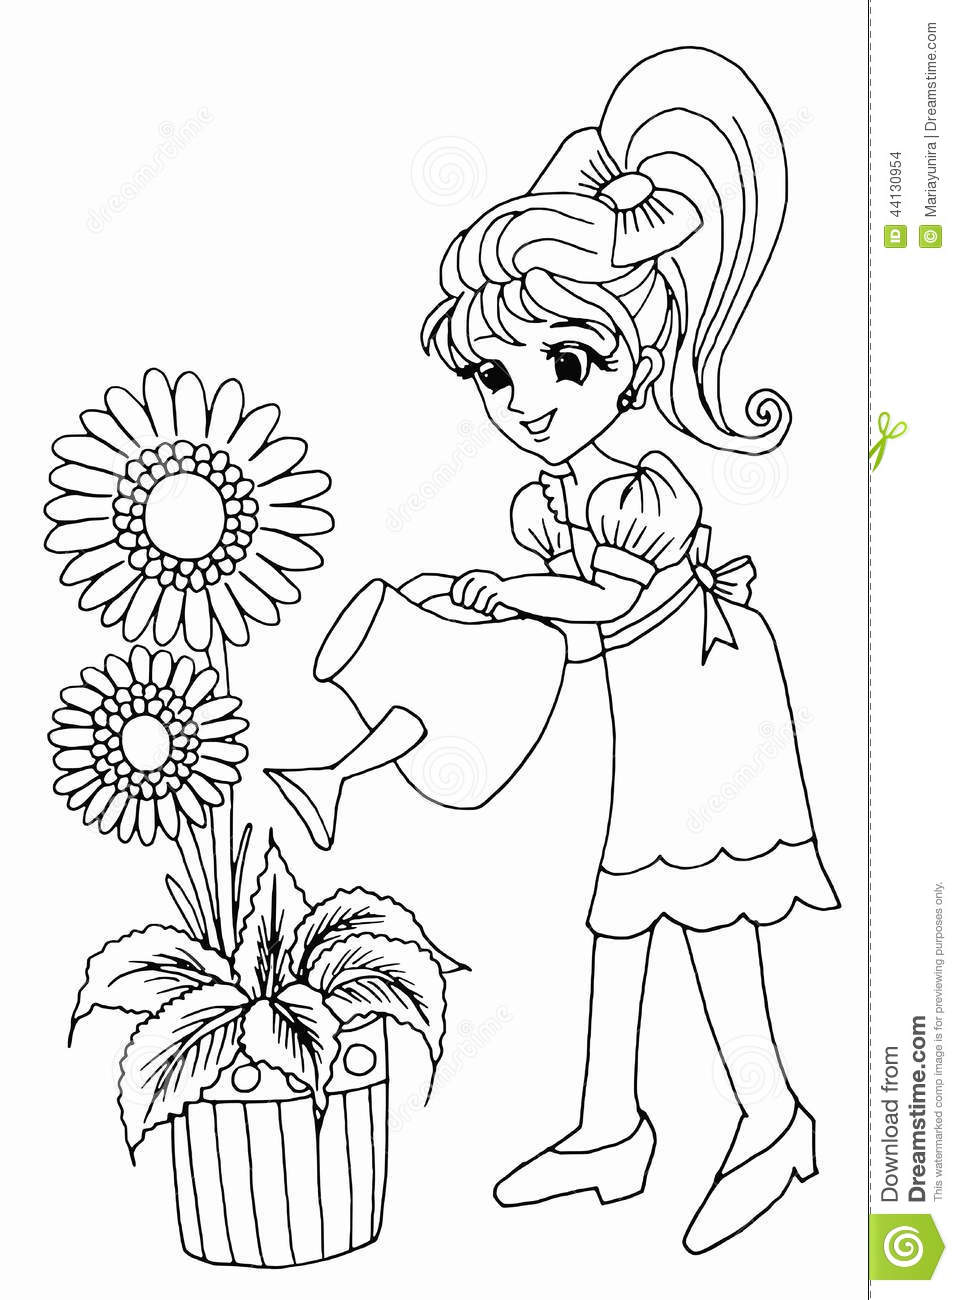 garden pictures to color garden full of tall grass coloring pages color luna garden pictures to color